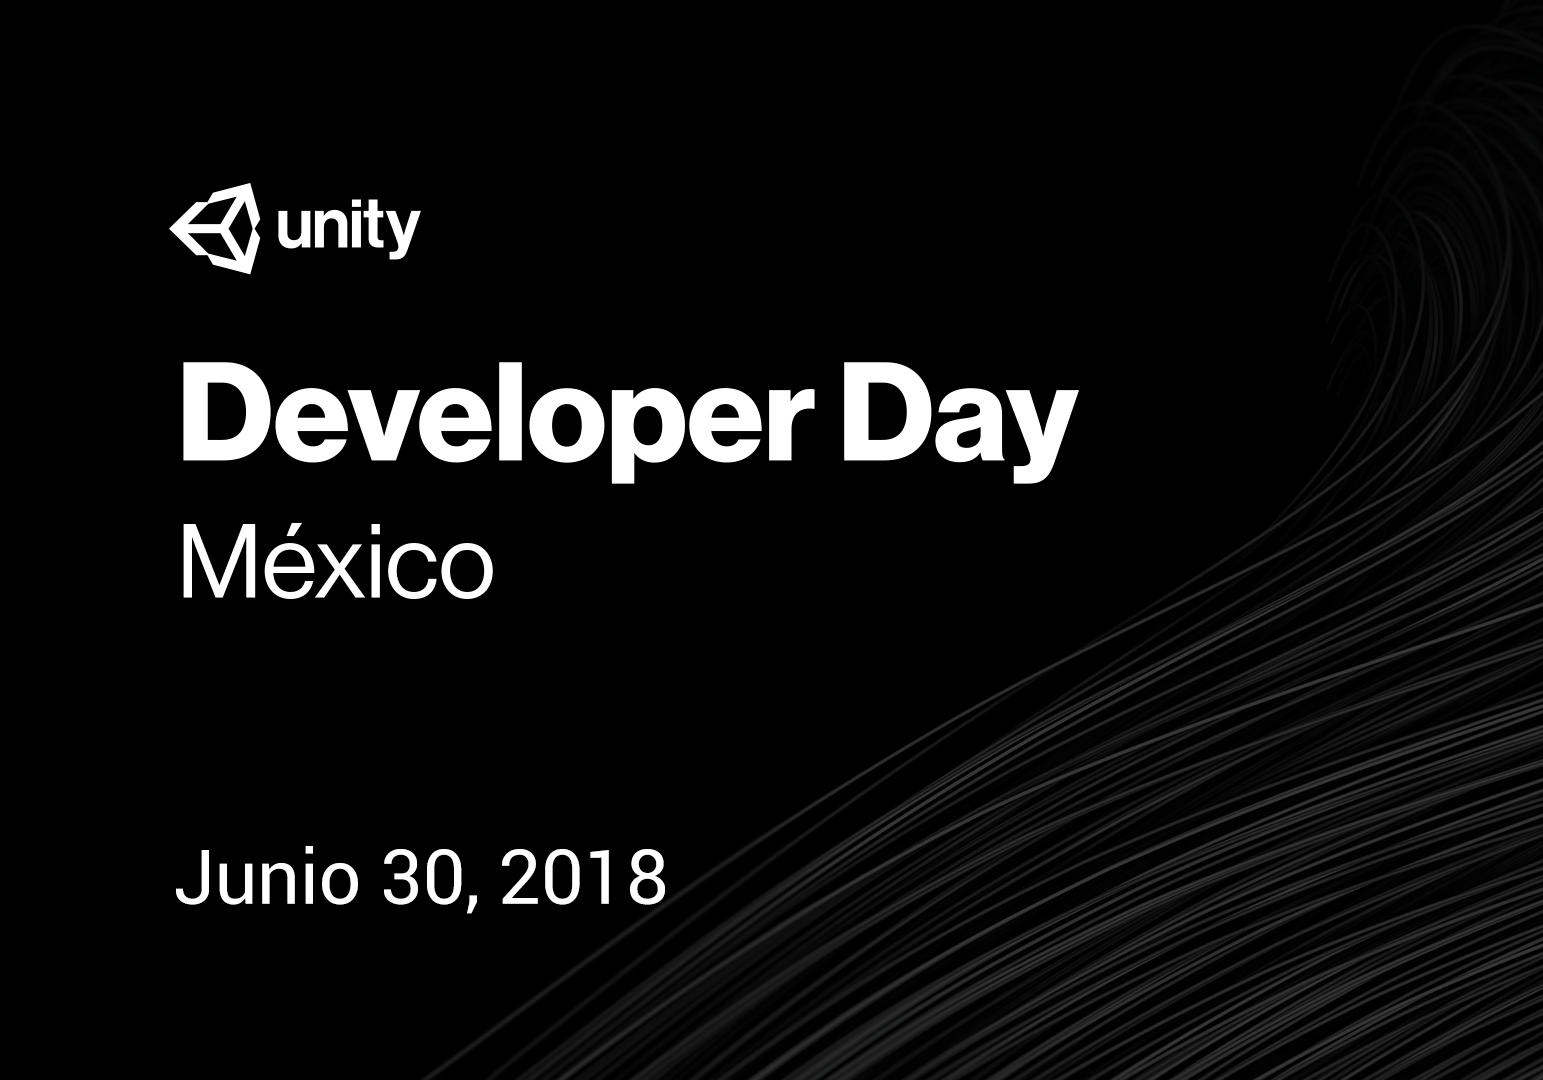 Unity Developer Day: Mexico 2018